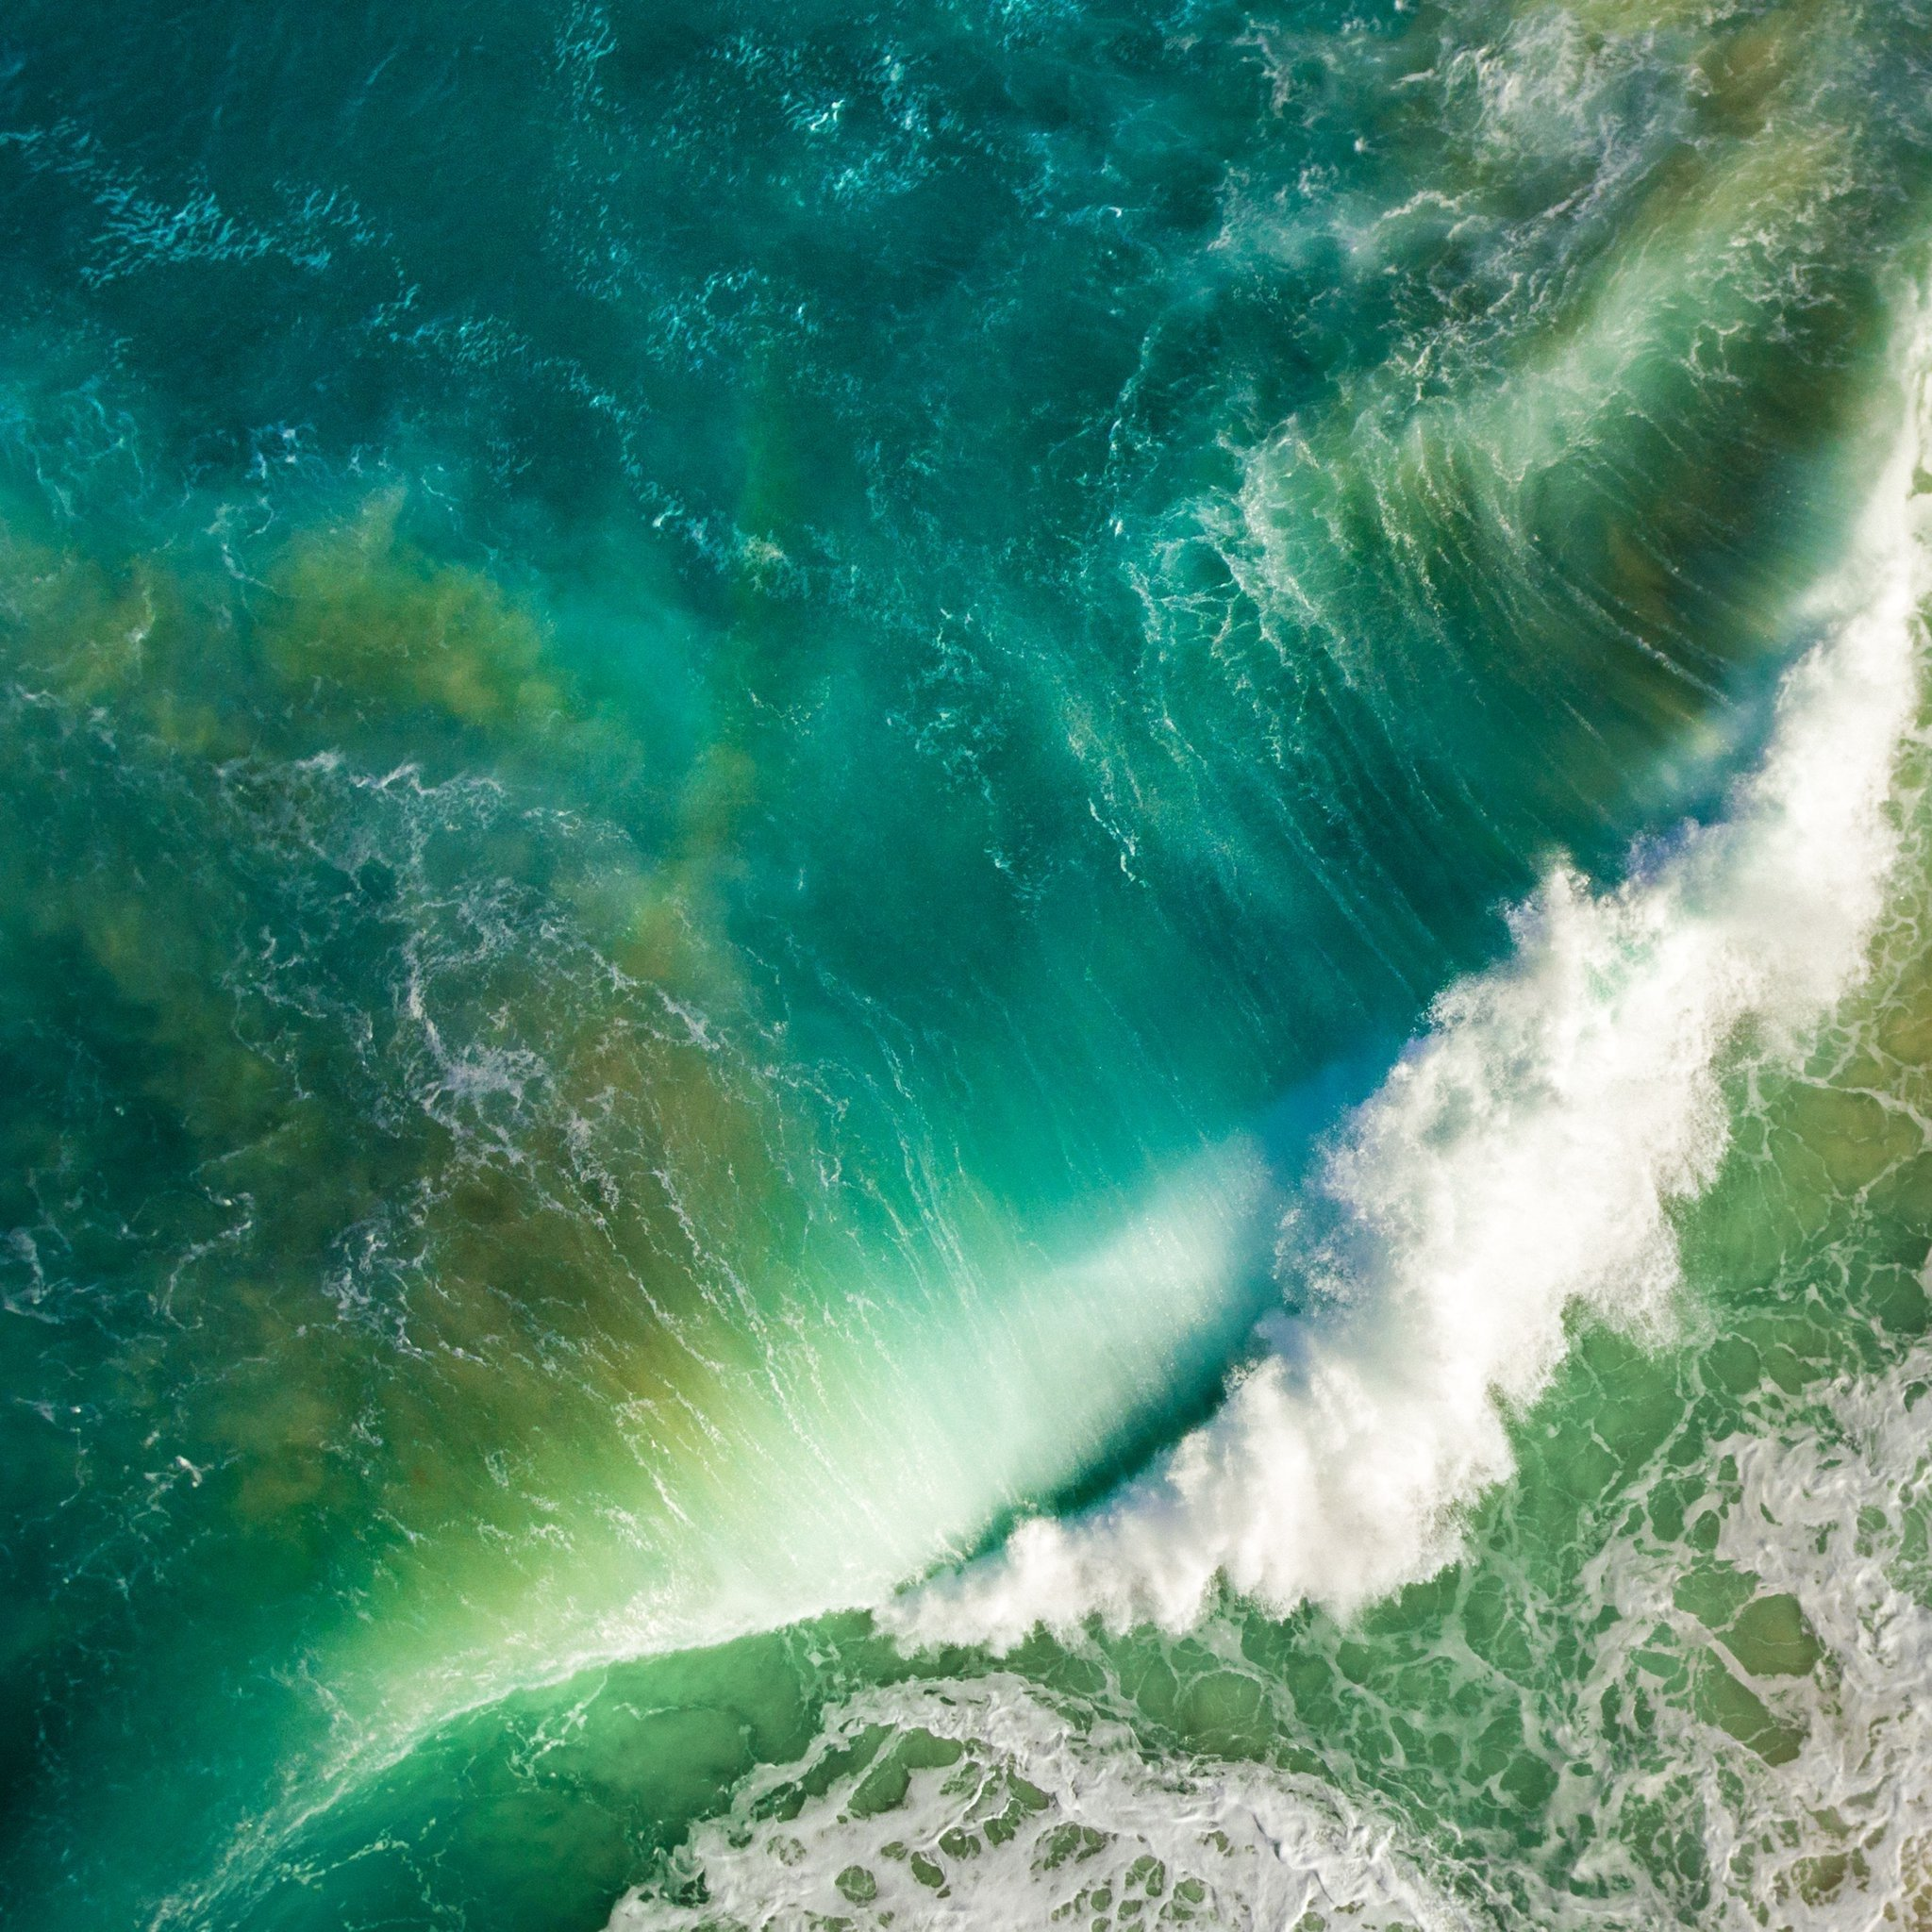 Ios 8 wallpaper for mac